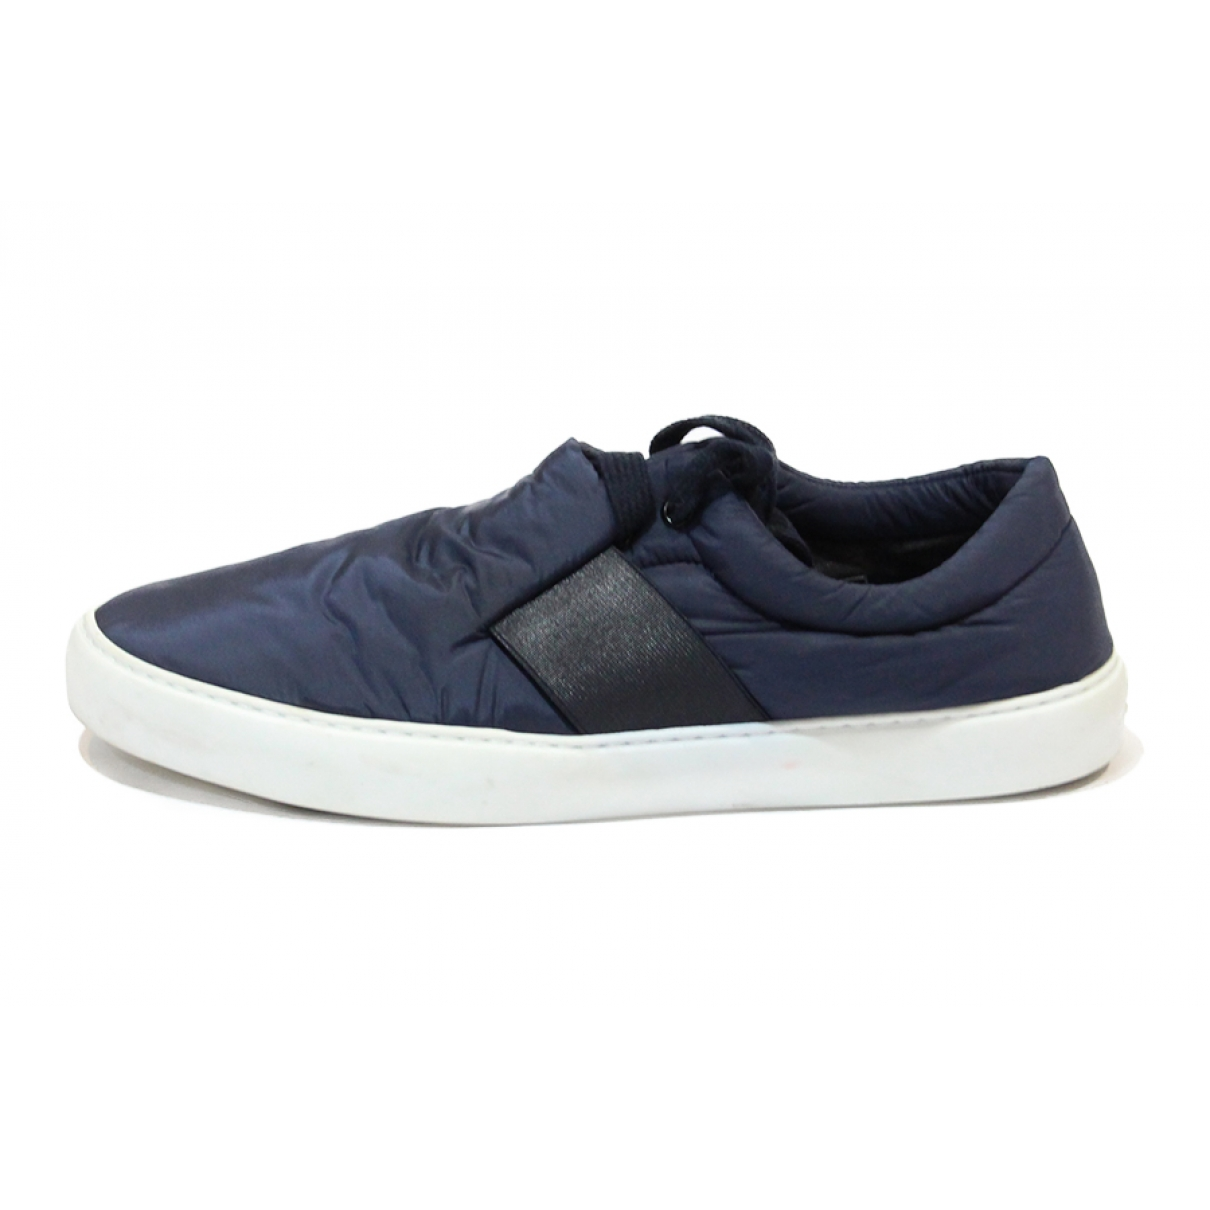 Chanel \N Navy Trainers for Women 40 EU